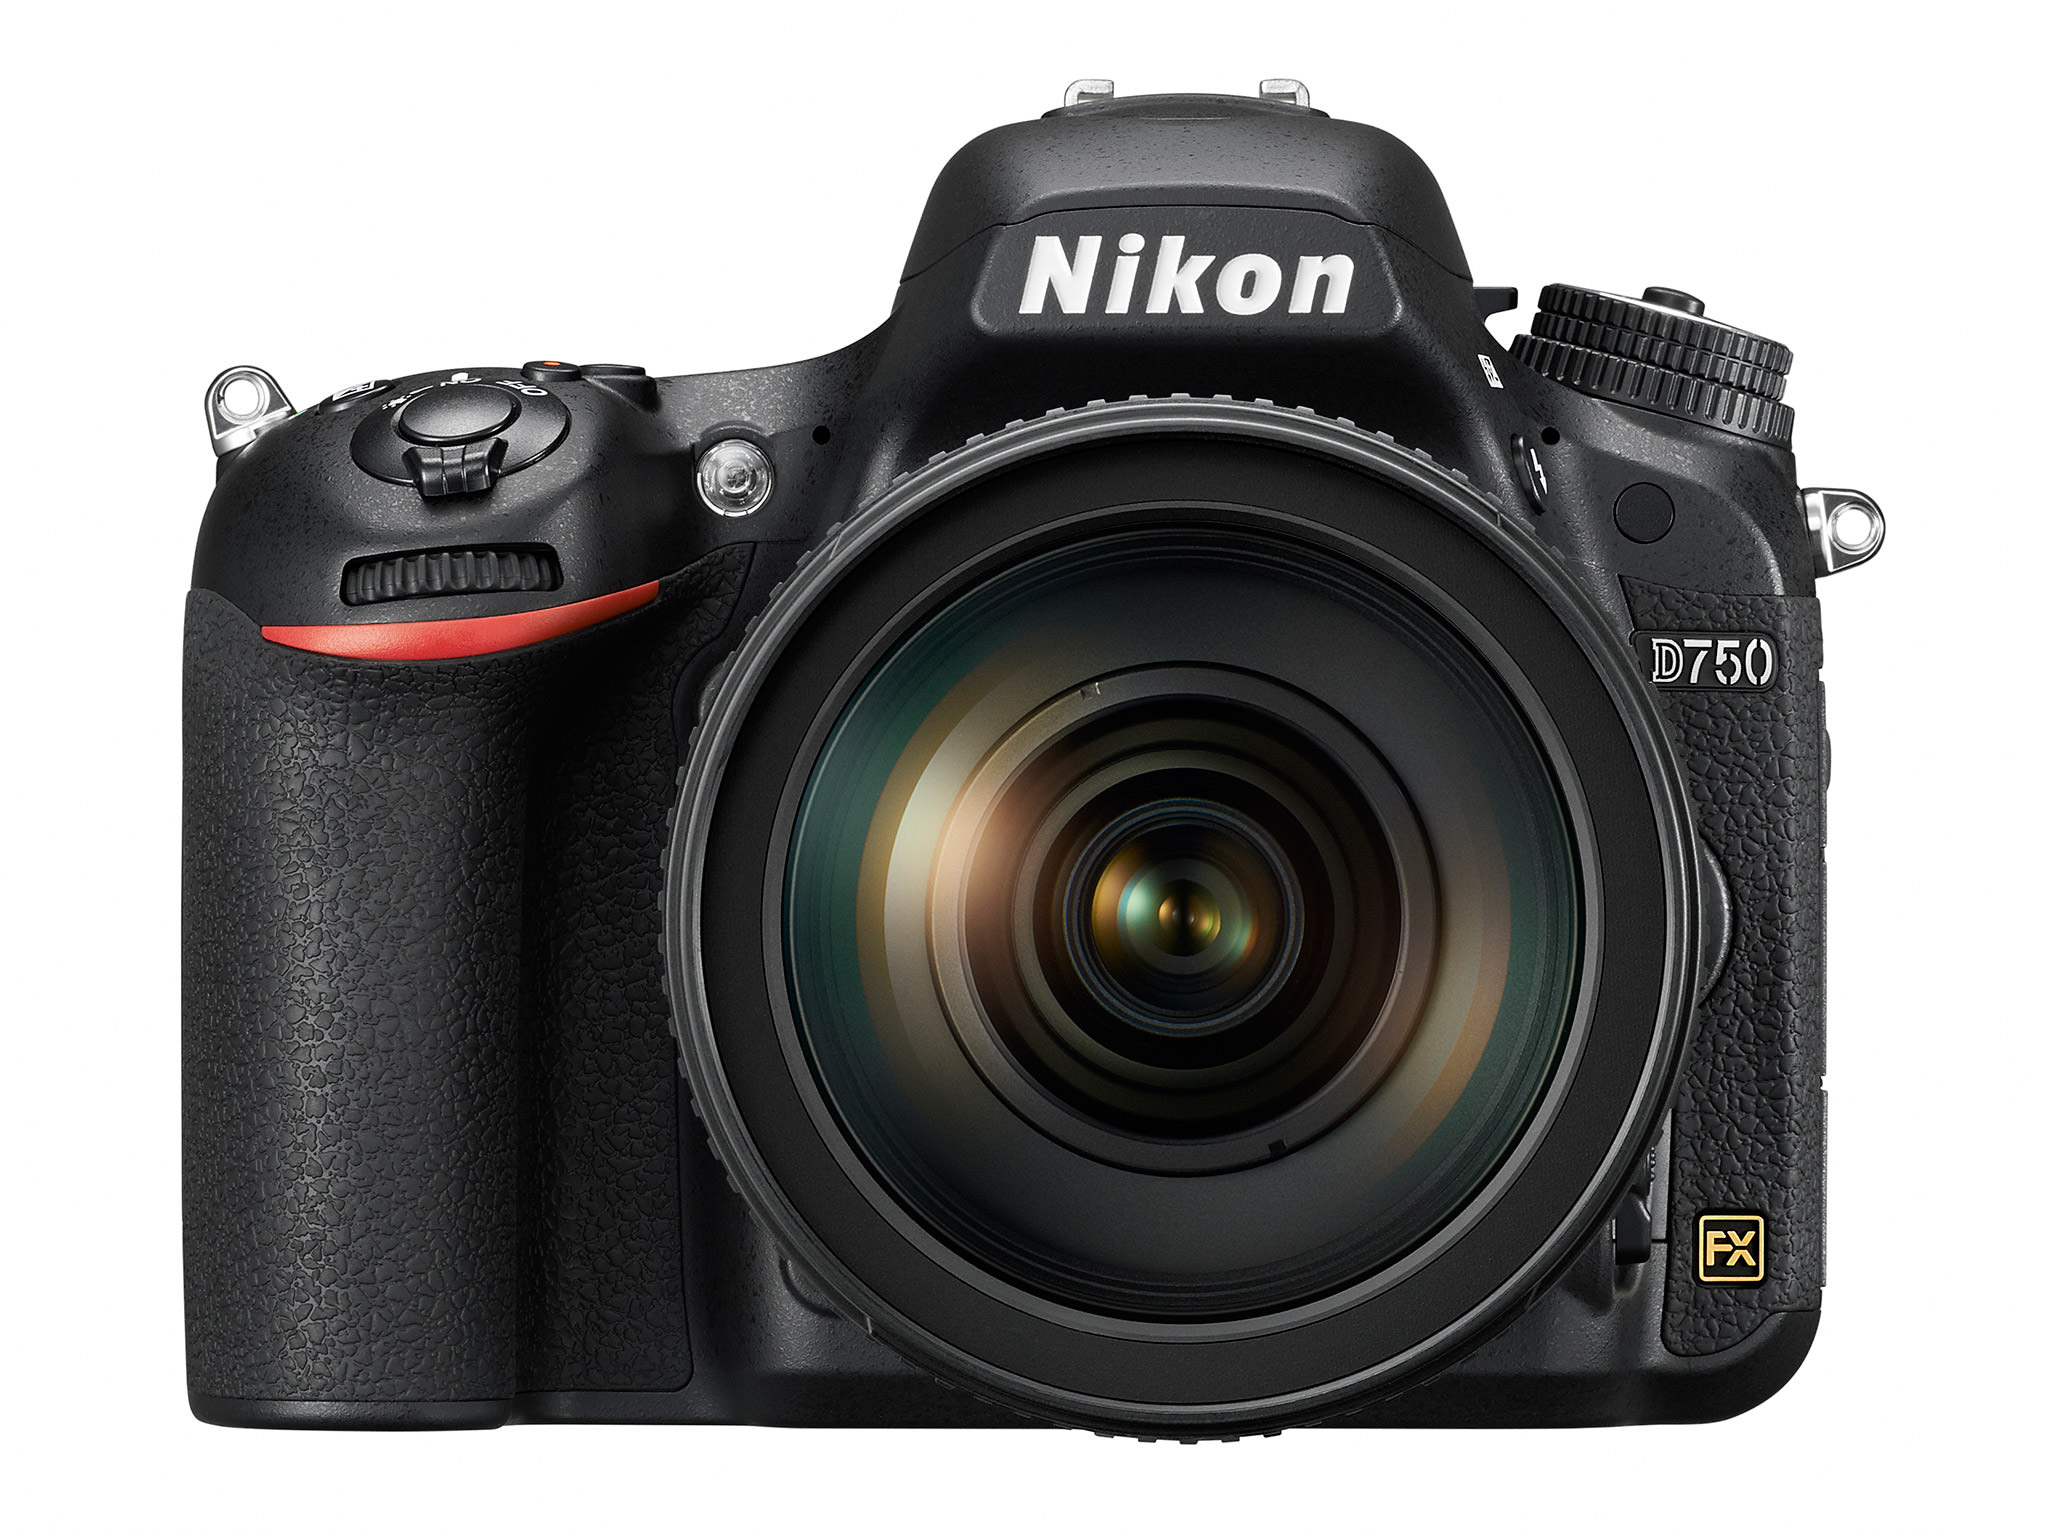 Dark Materialgared This Nikon Review Photography Life Nikon D810 Replacement Battery Nikon D810 Sensor Replacement In This I Will Be Focusing On Capabilities Andcomparing It To Nikon dpreview Nikon D810 Replacement